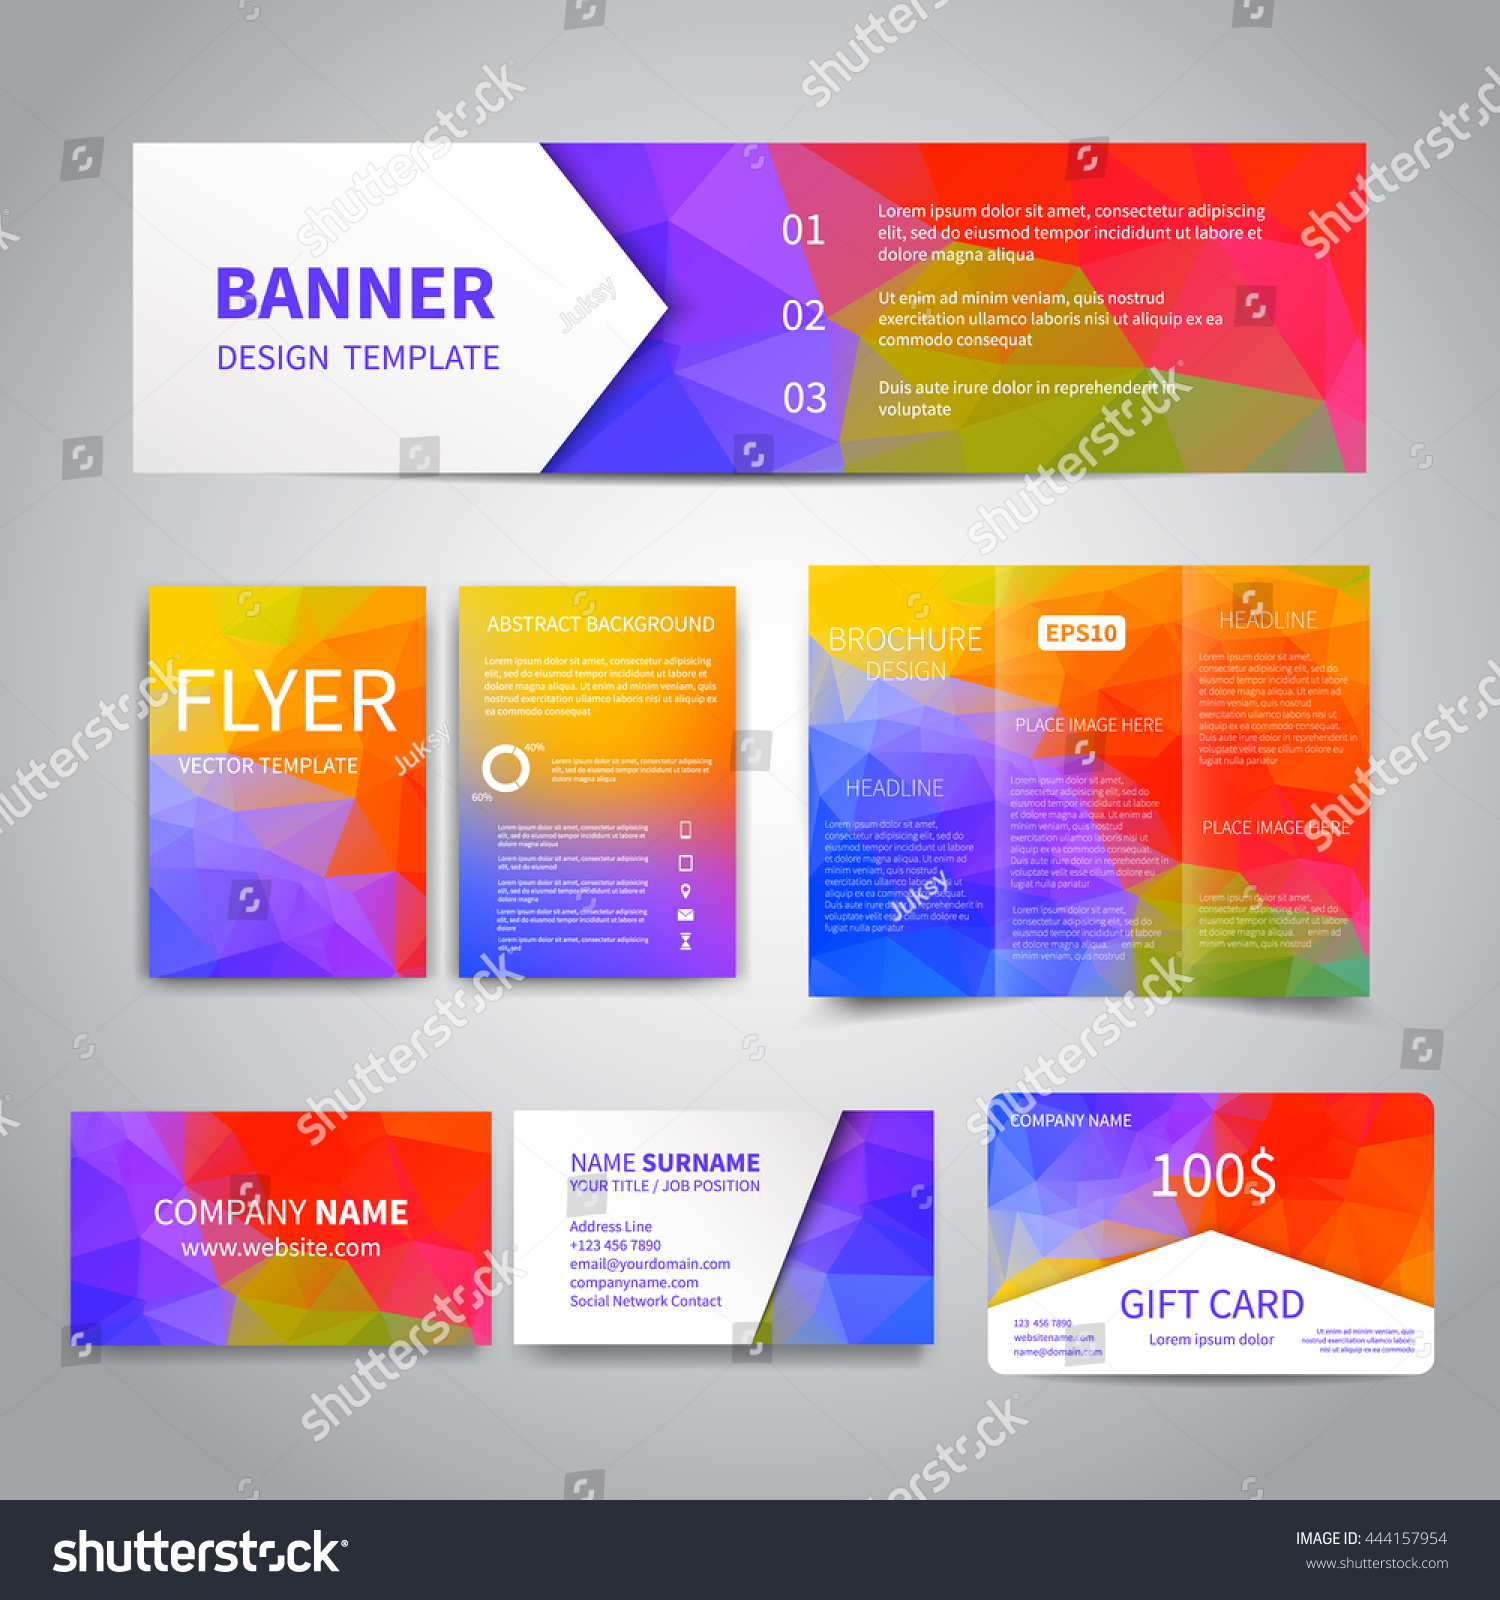 Banner flyers brochure business cards gift stock vector 444157954 banner flyers brochure business cards gift card design templates set with geometric magicingreecefo Image collections